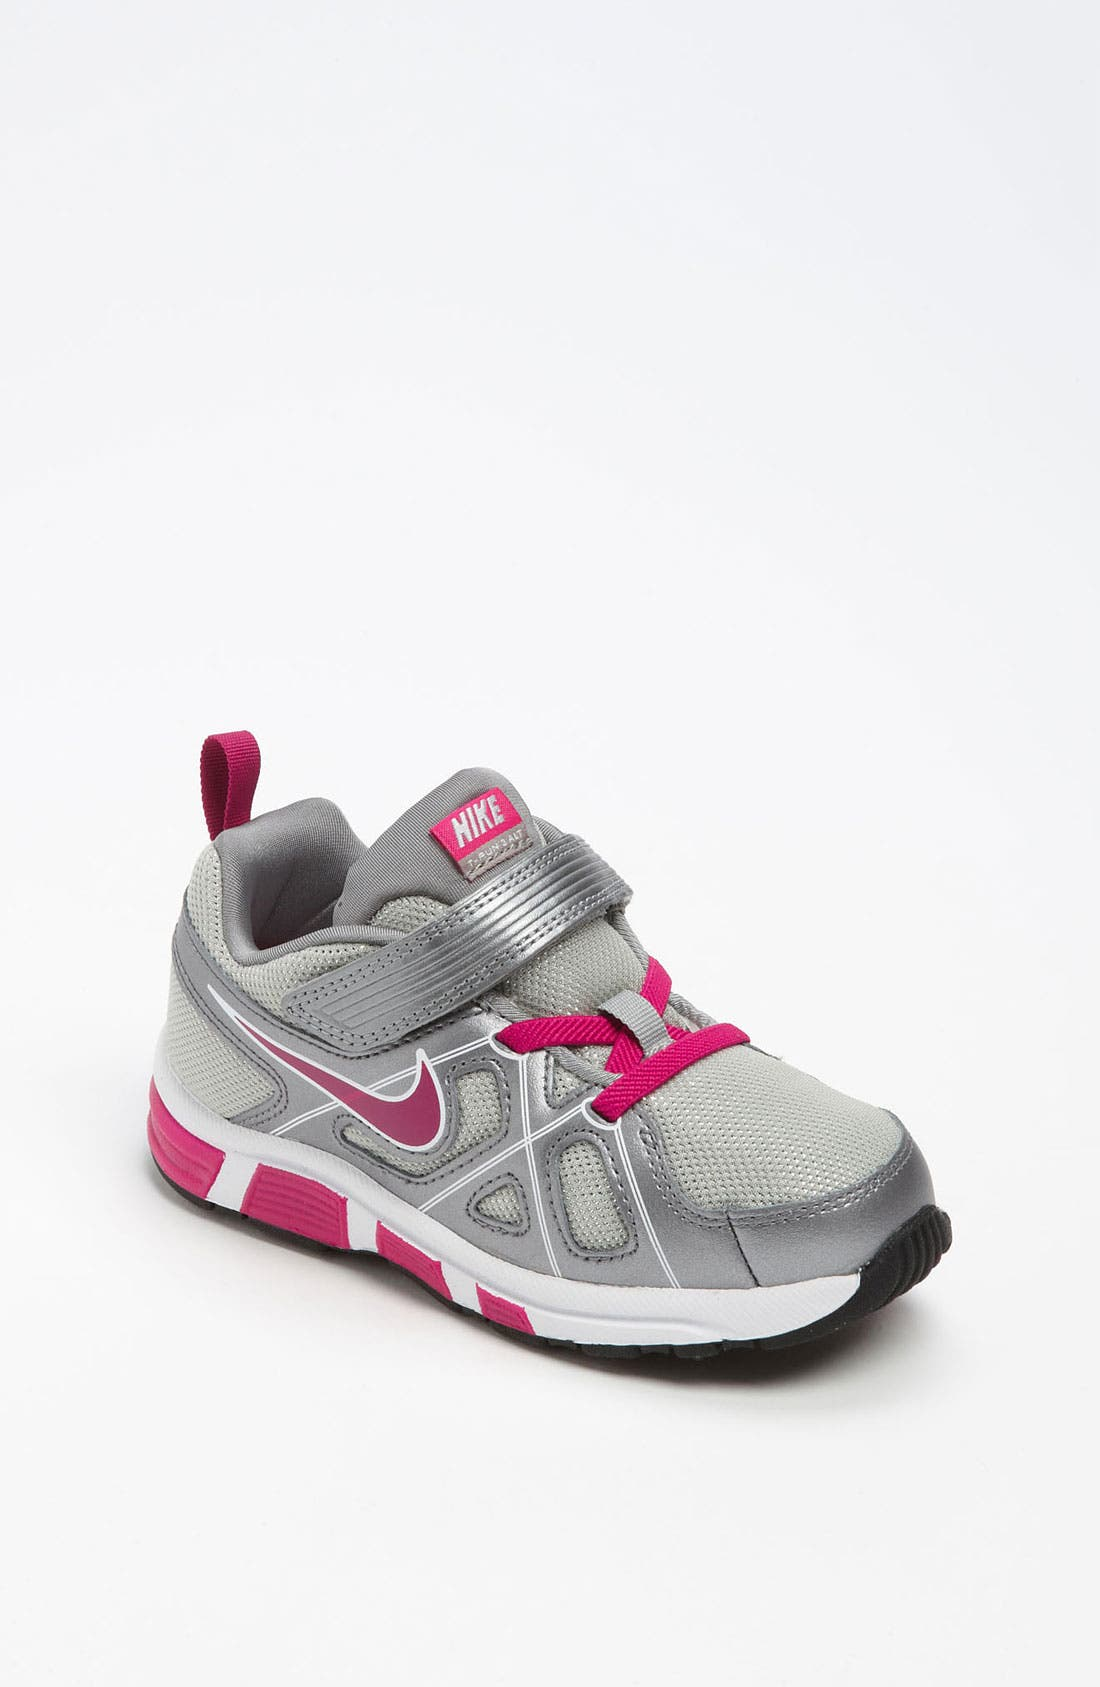 Main Image - Nike 'T-Run 3 Alt' Running Shoe (Baby, Walker & Toddler) (Special Purchase)